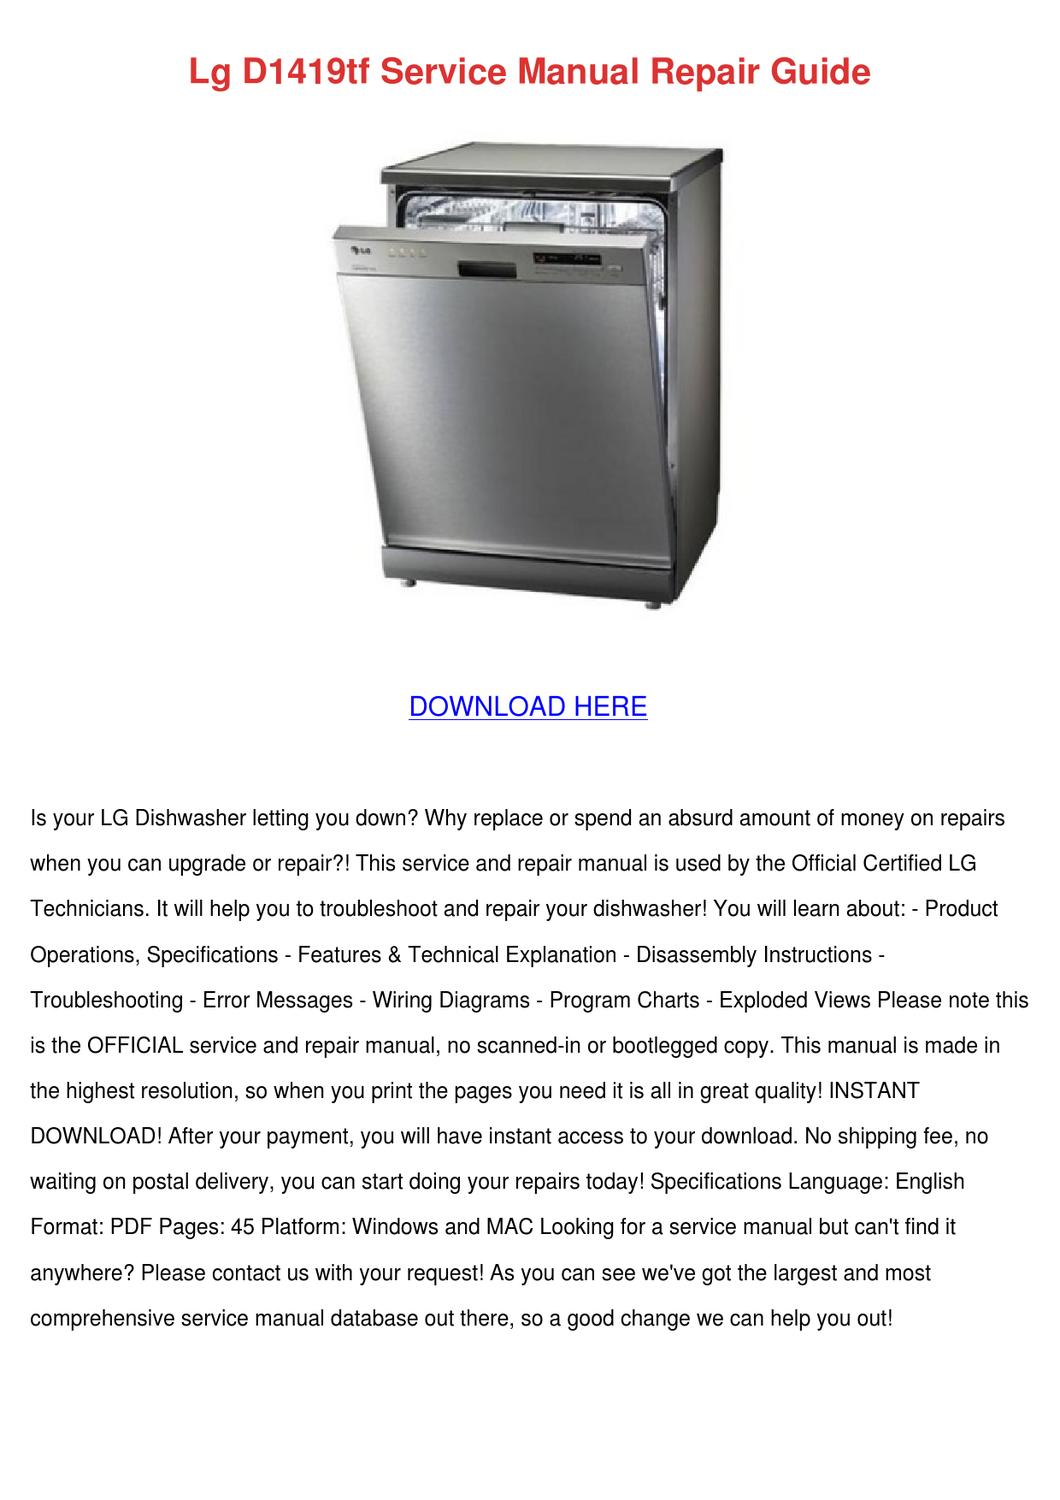 Lg D1419tf Service Manual Repair Guide by JeffereyHandley - issuu